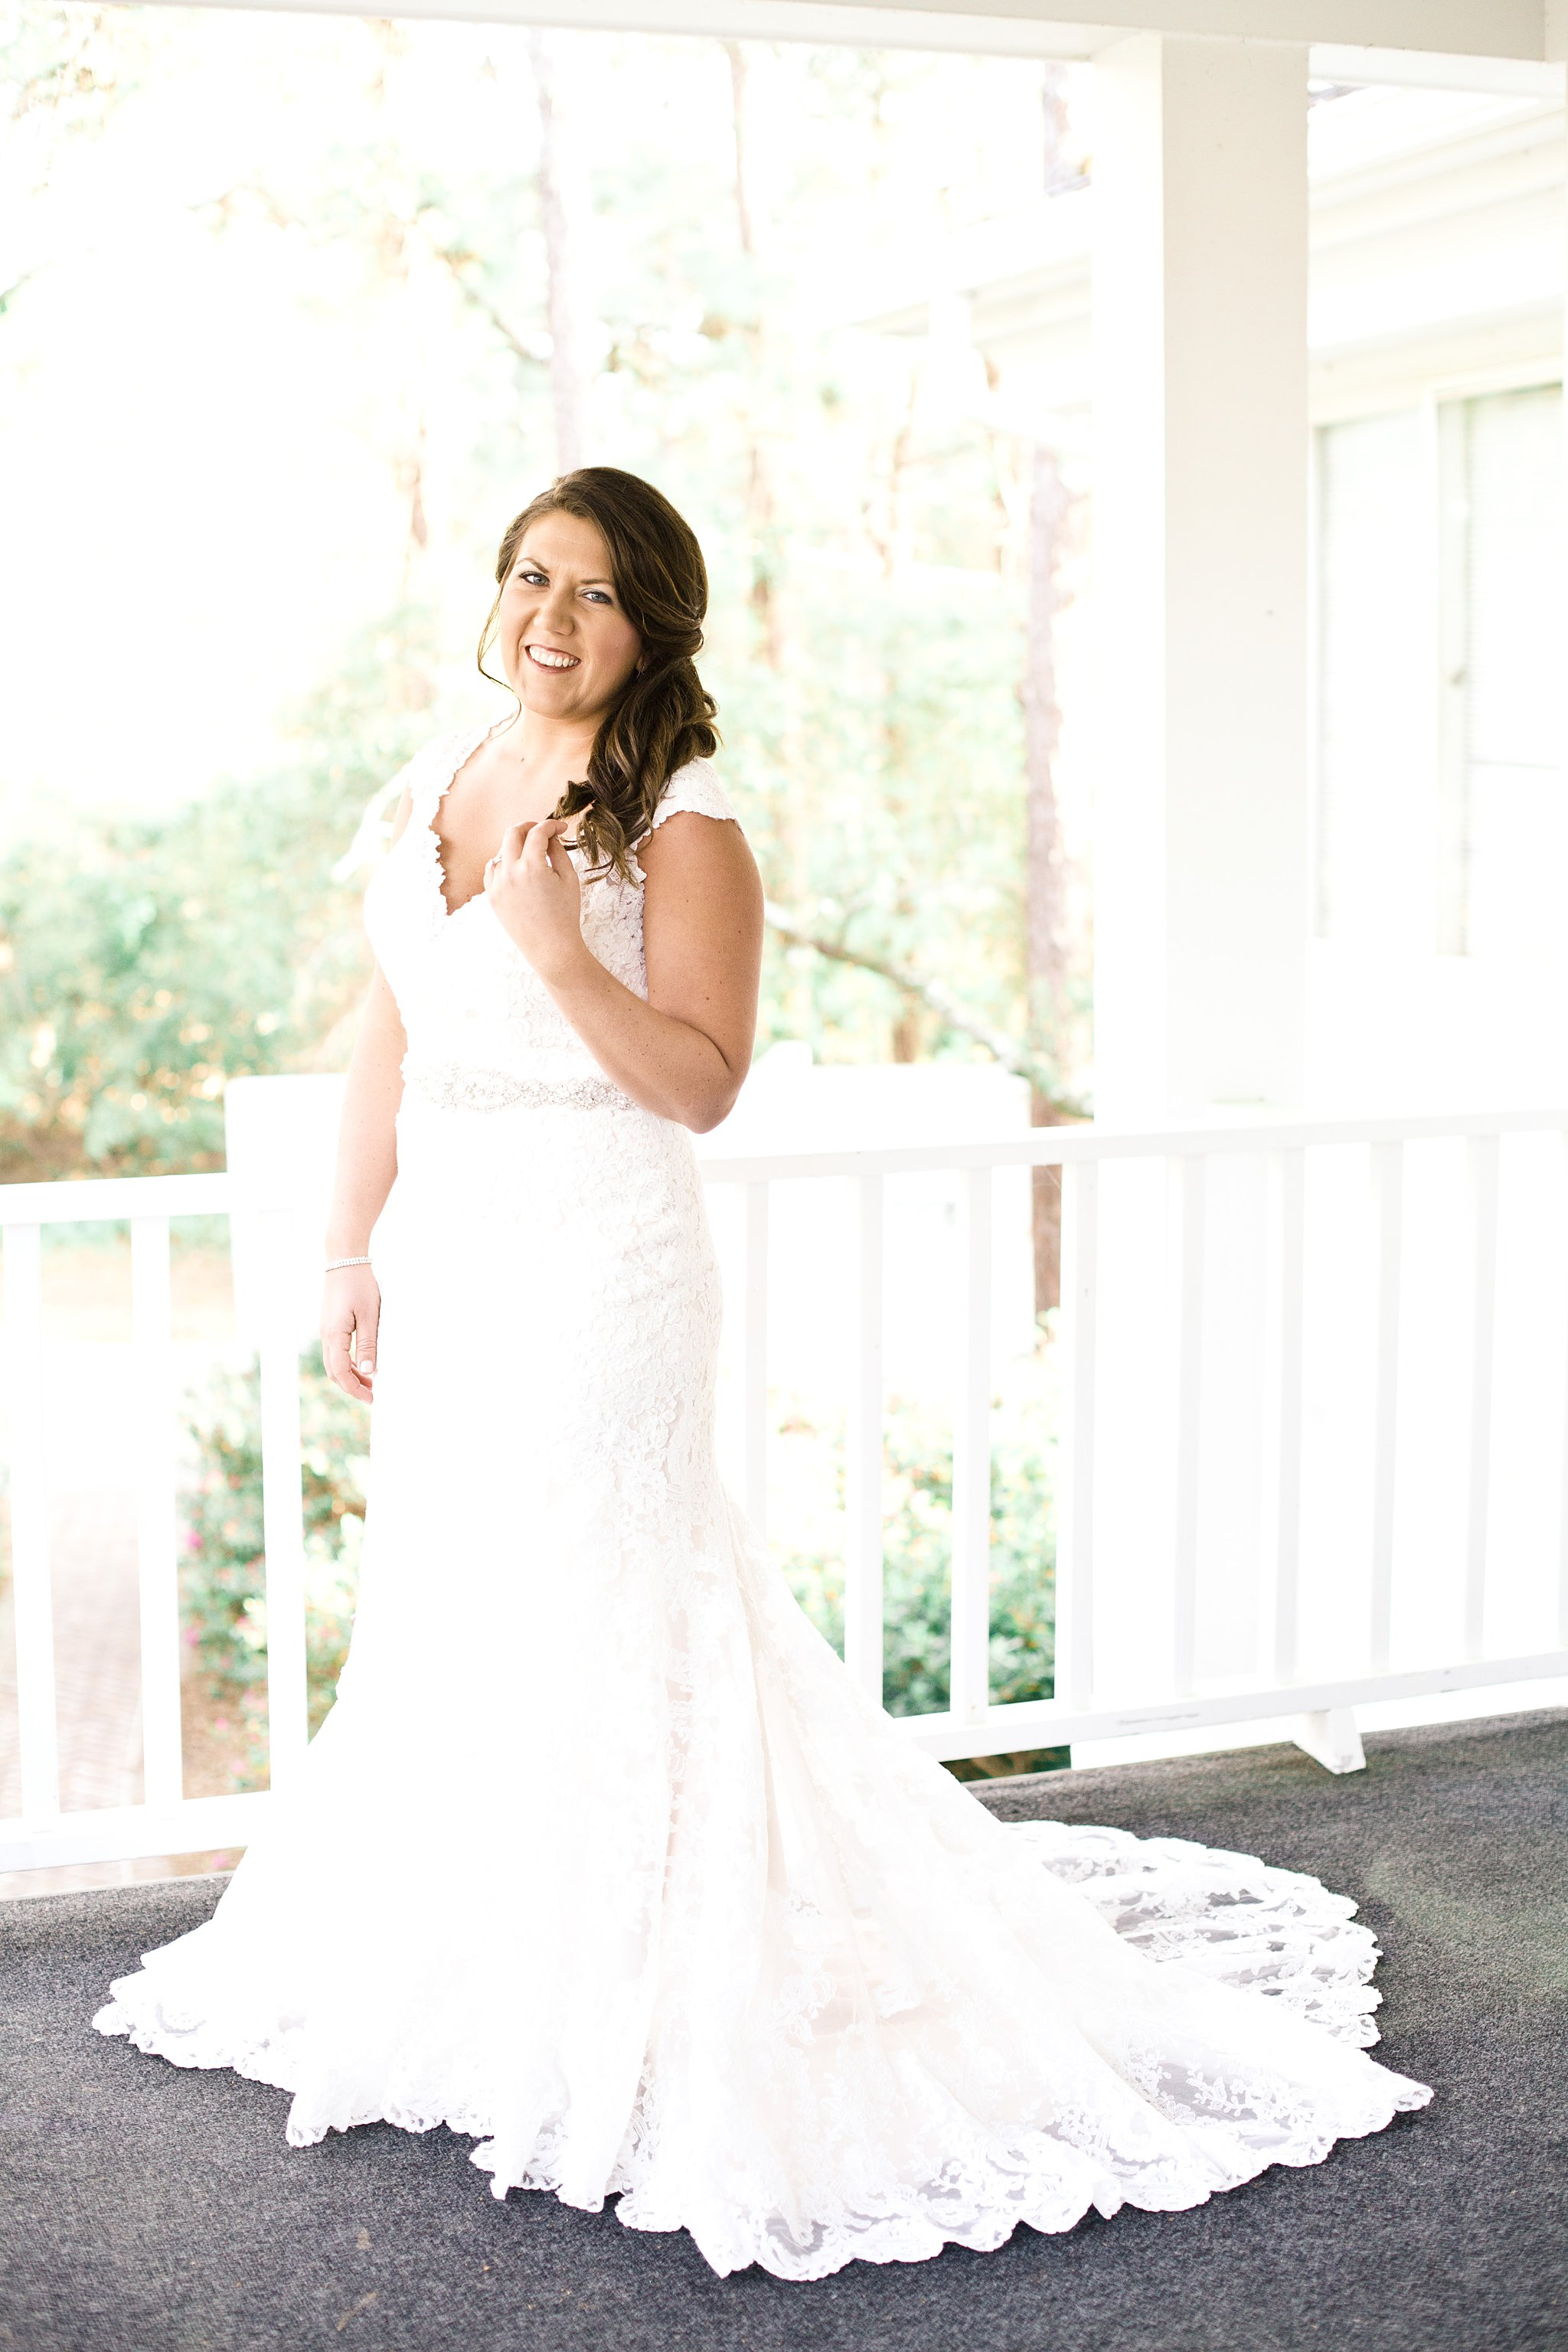 litchfield-golf-country-club-bridal-session-pawleys-island-sc-photos_0147.jpg